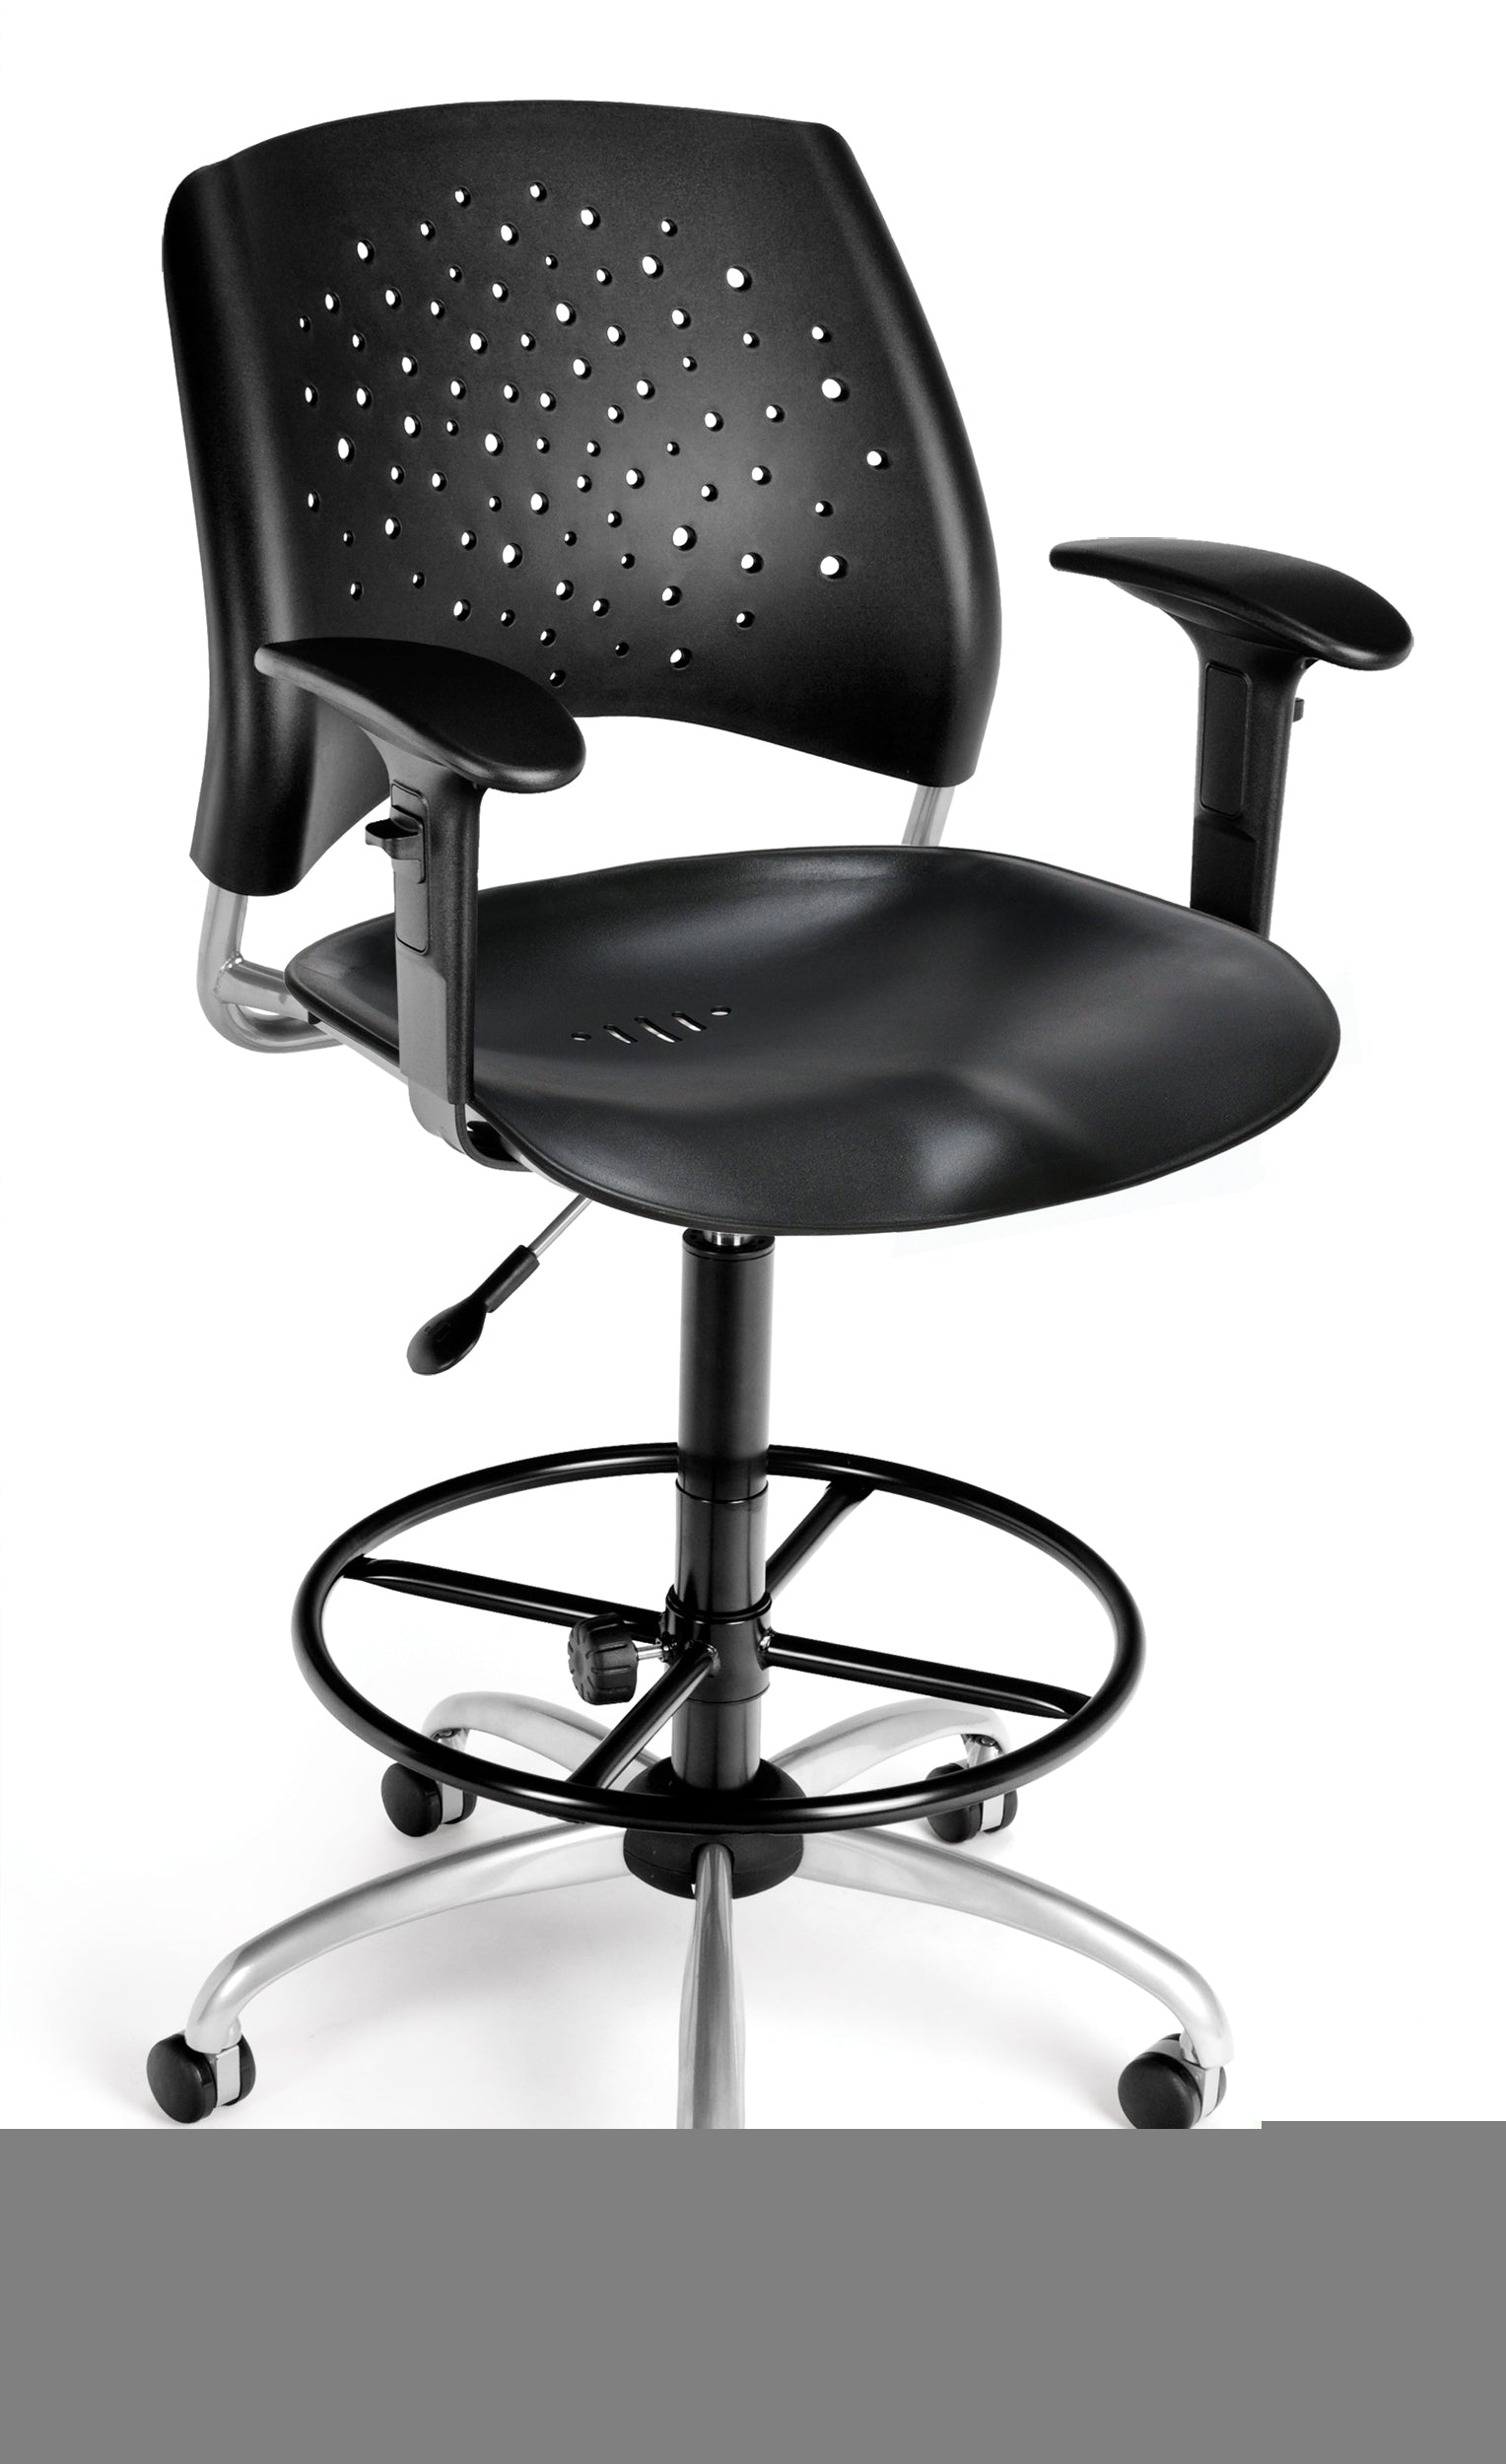 326-P-AA3-DK Star Series Plastic Swivel Chair with Arms & Drafting Kit